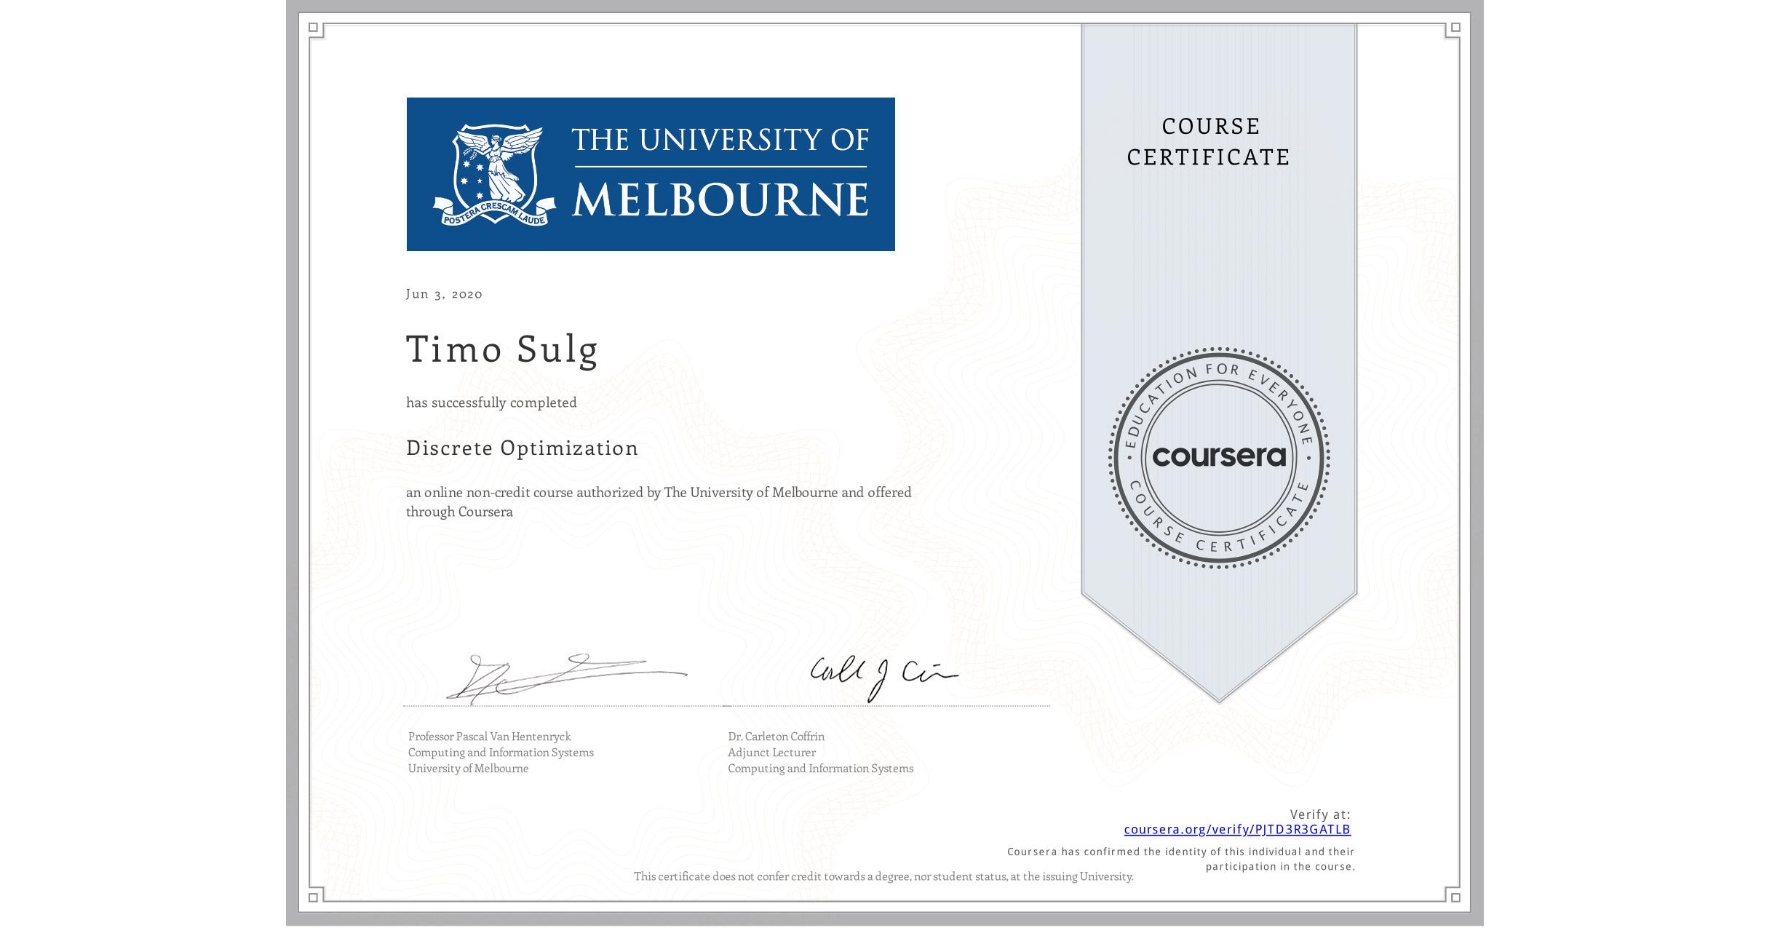 View certificate for Timo Sulg, Discrete Optimization, an online non-credit course authorized by The University of Melbourne and offered through Coursera